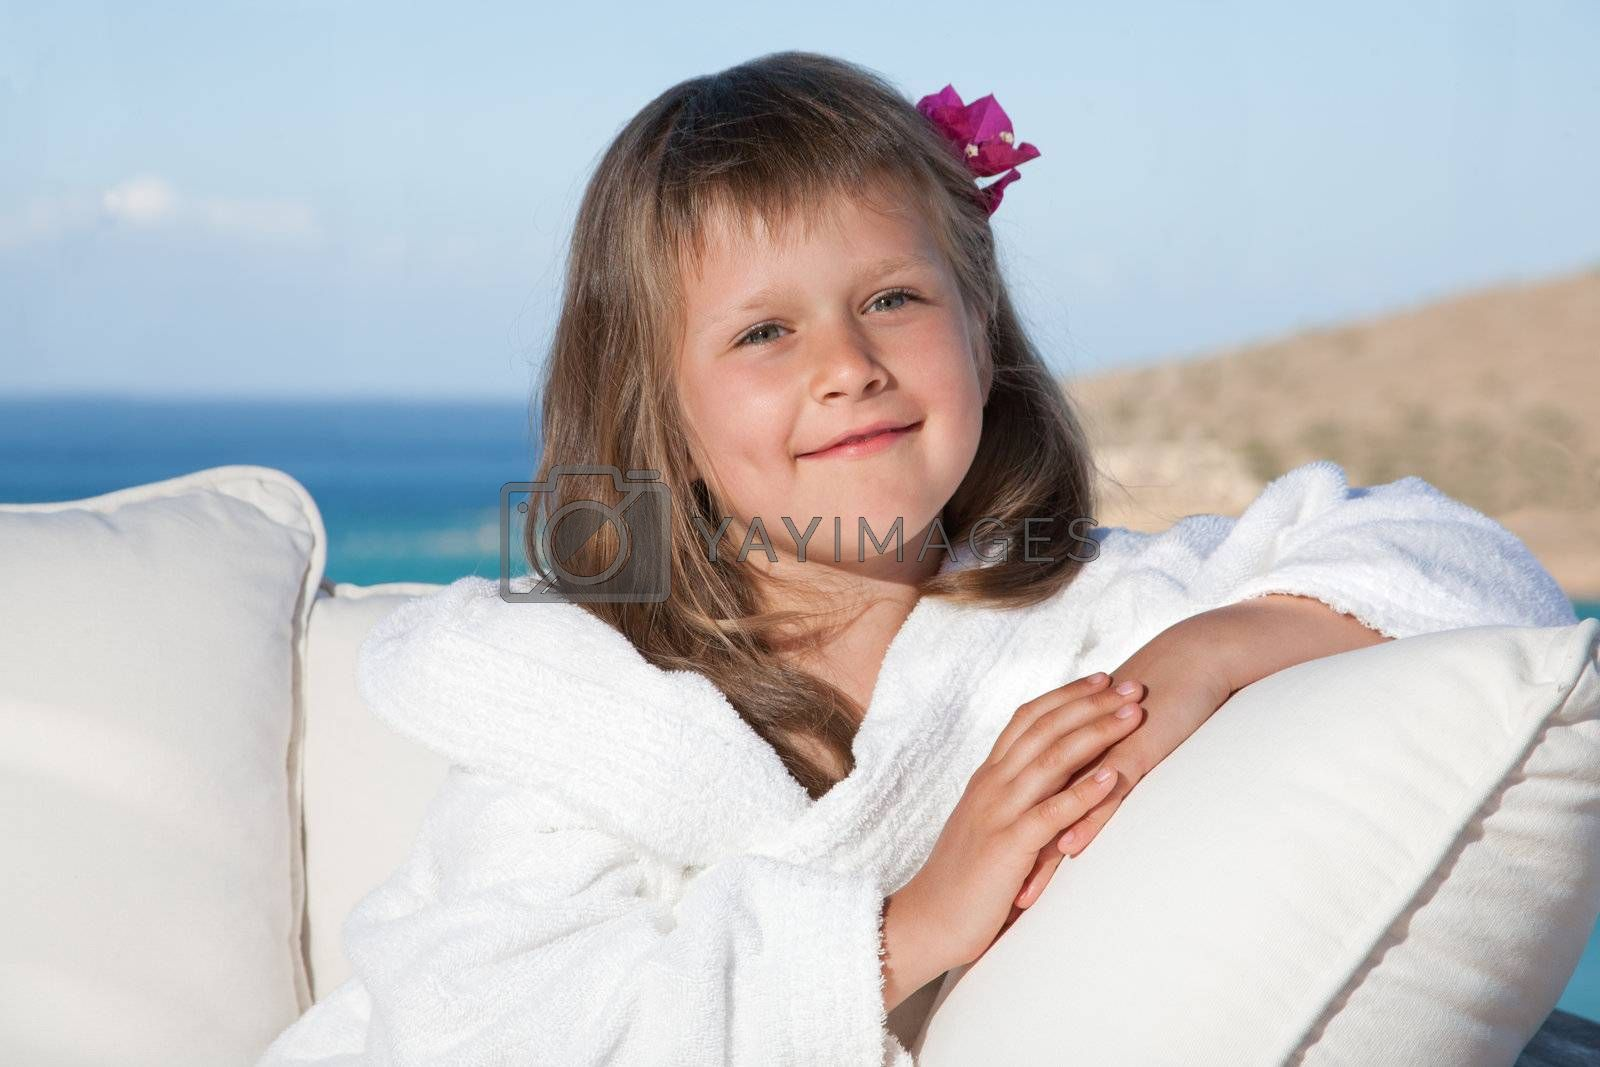 Little girl in white bathrobe relaxing on terrace sea background by SergeyAK